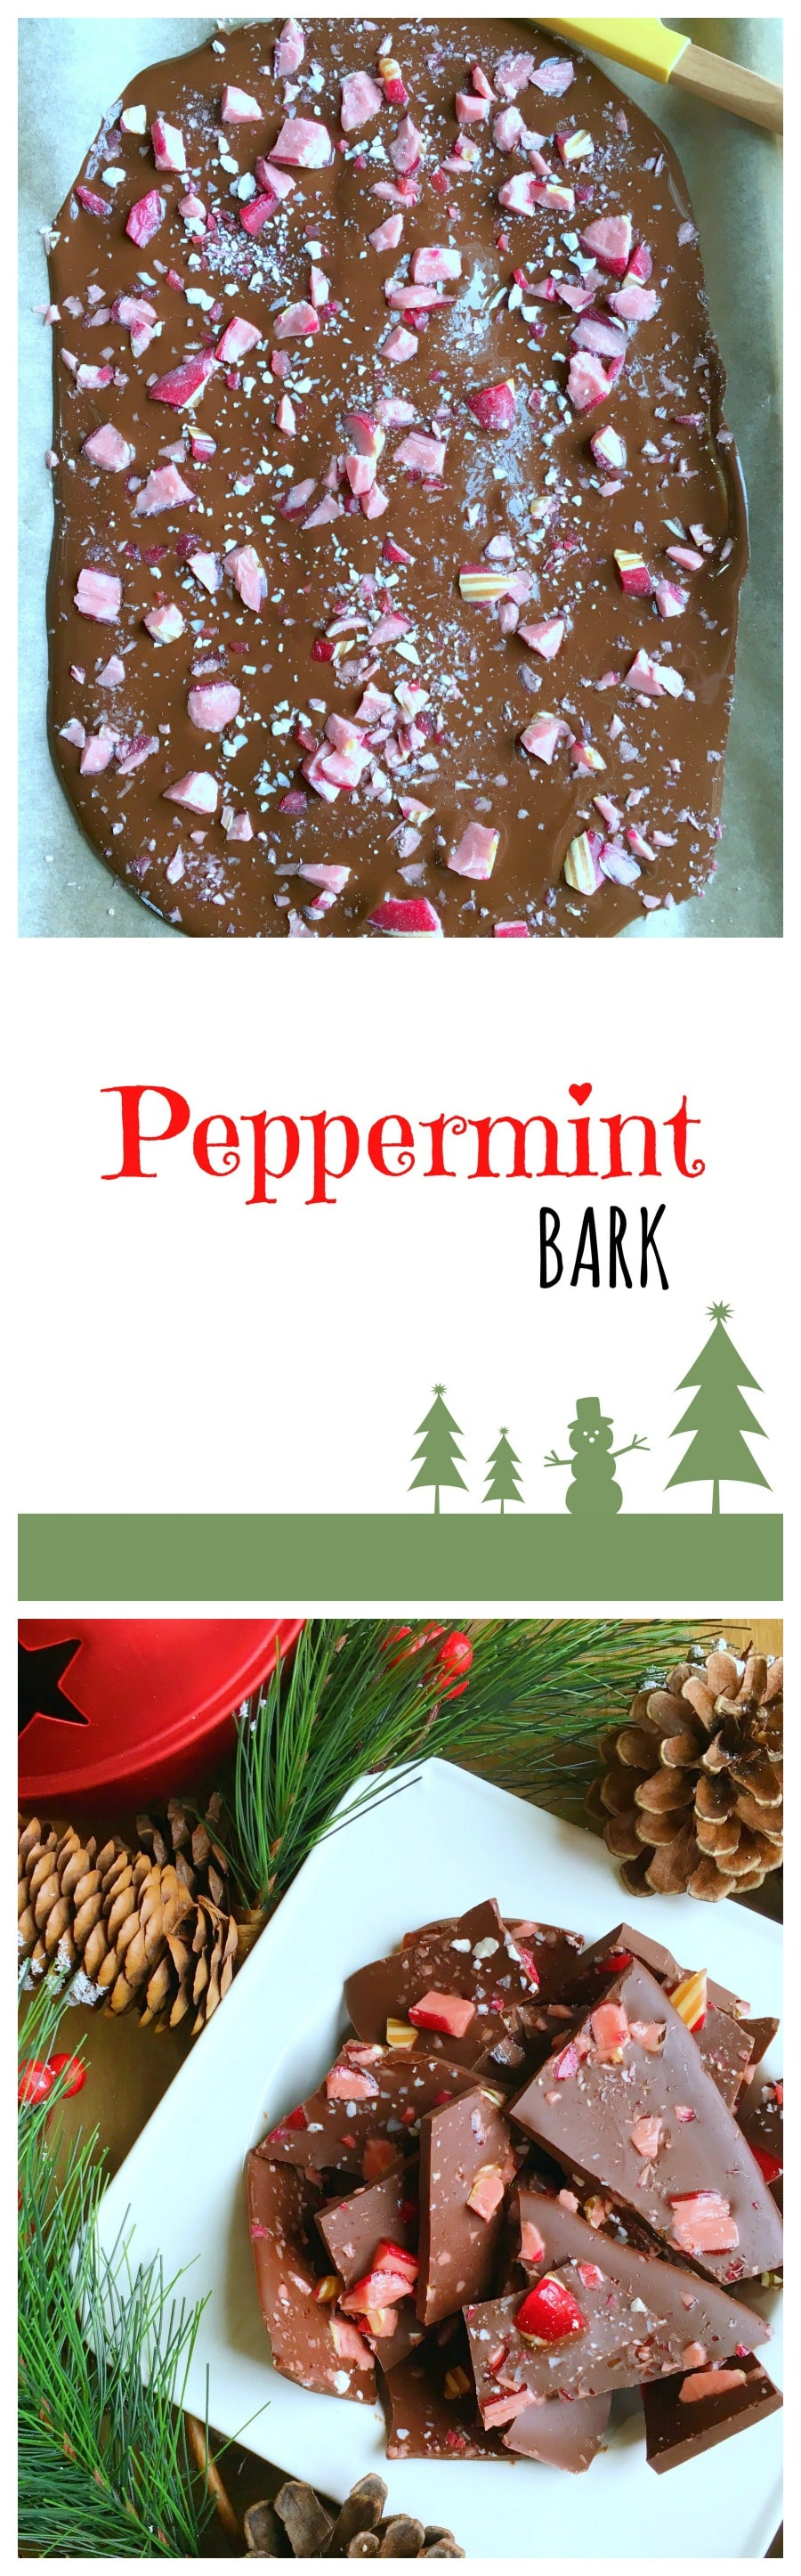 This peppermint bark is a sweet treat to enjoy this Holiday Season. Serve it in a platter and cheer up your holiday table or make a few batches to gift to the ones you love.